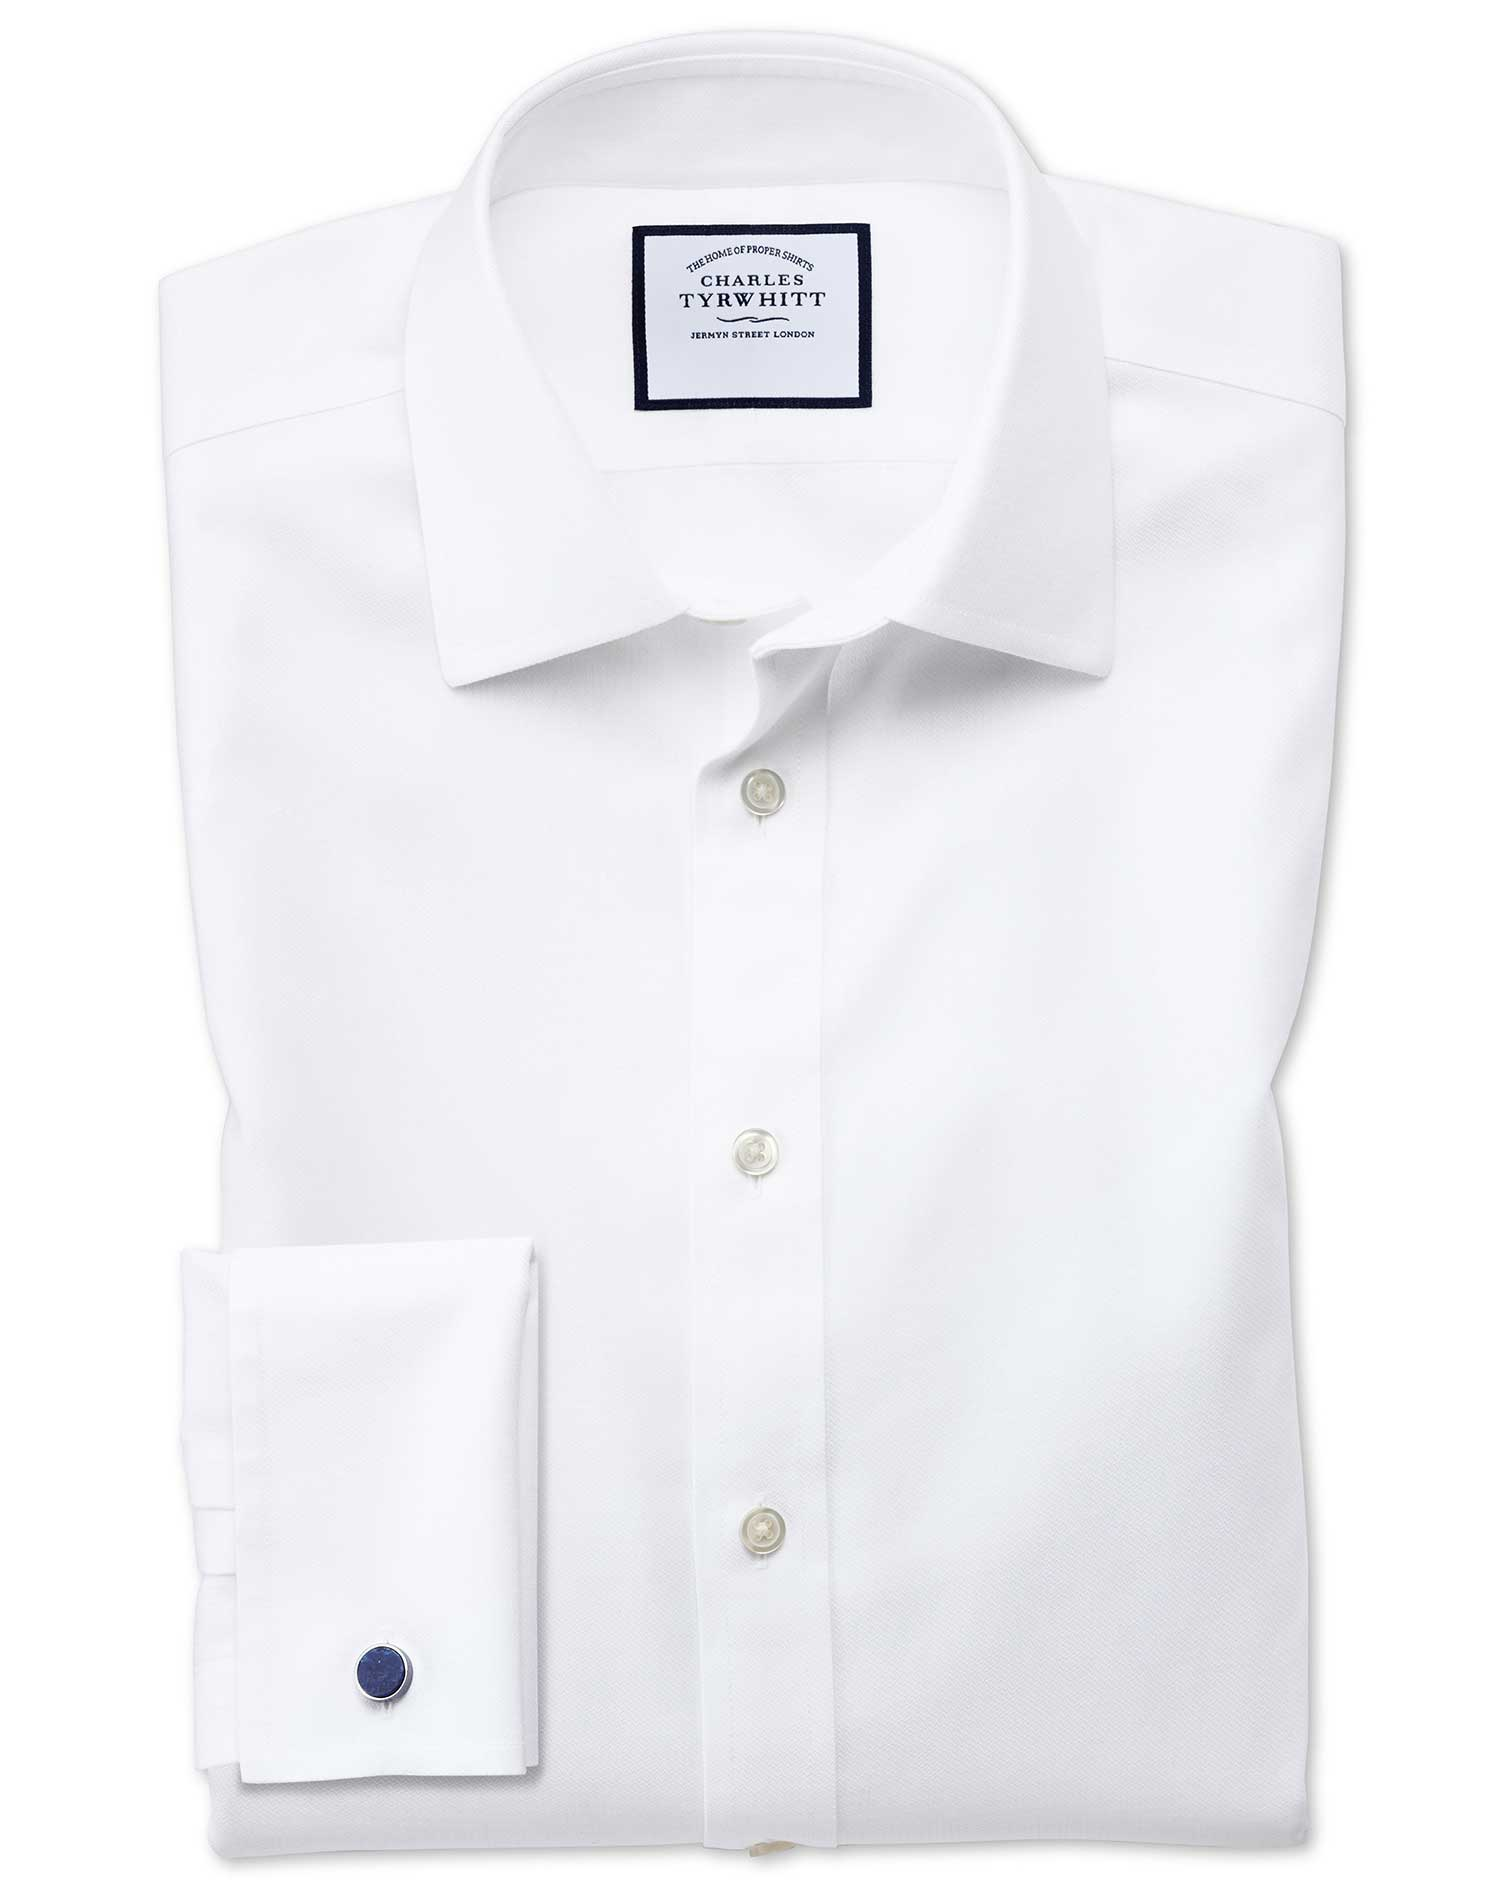 Classic Fit Non-Iron Step Weave White Cotton Formal Shirt Single Cuff Size 19/37 by Charles Tyrwhitt